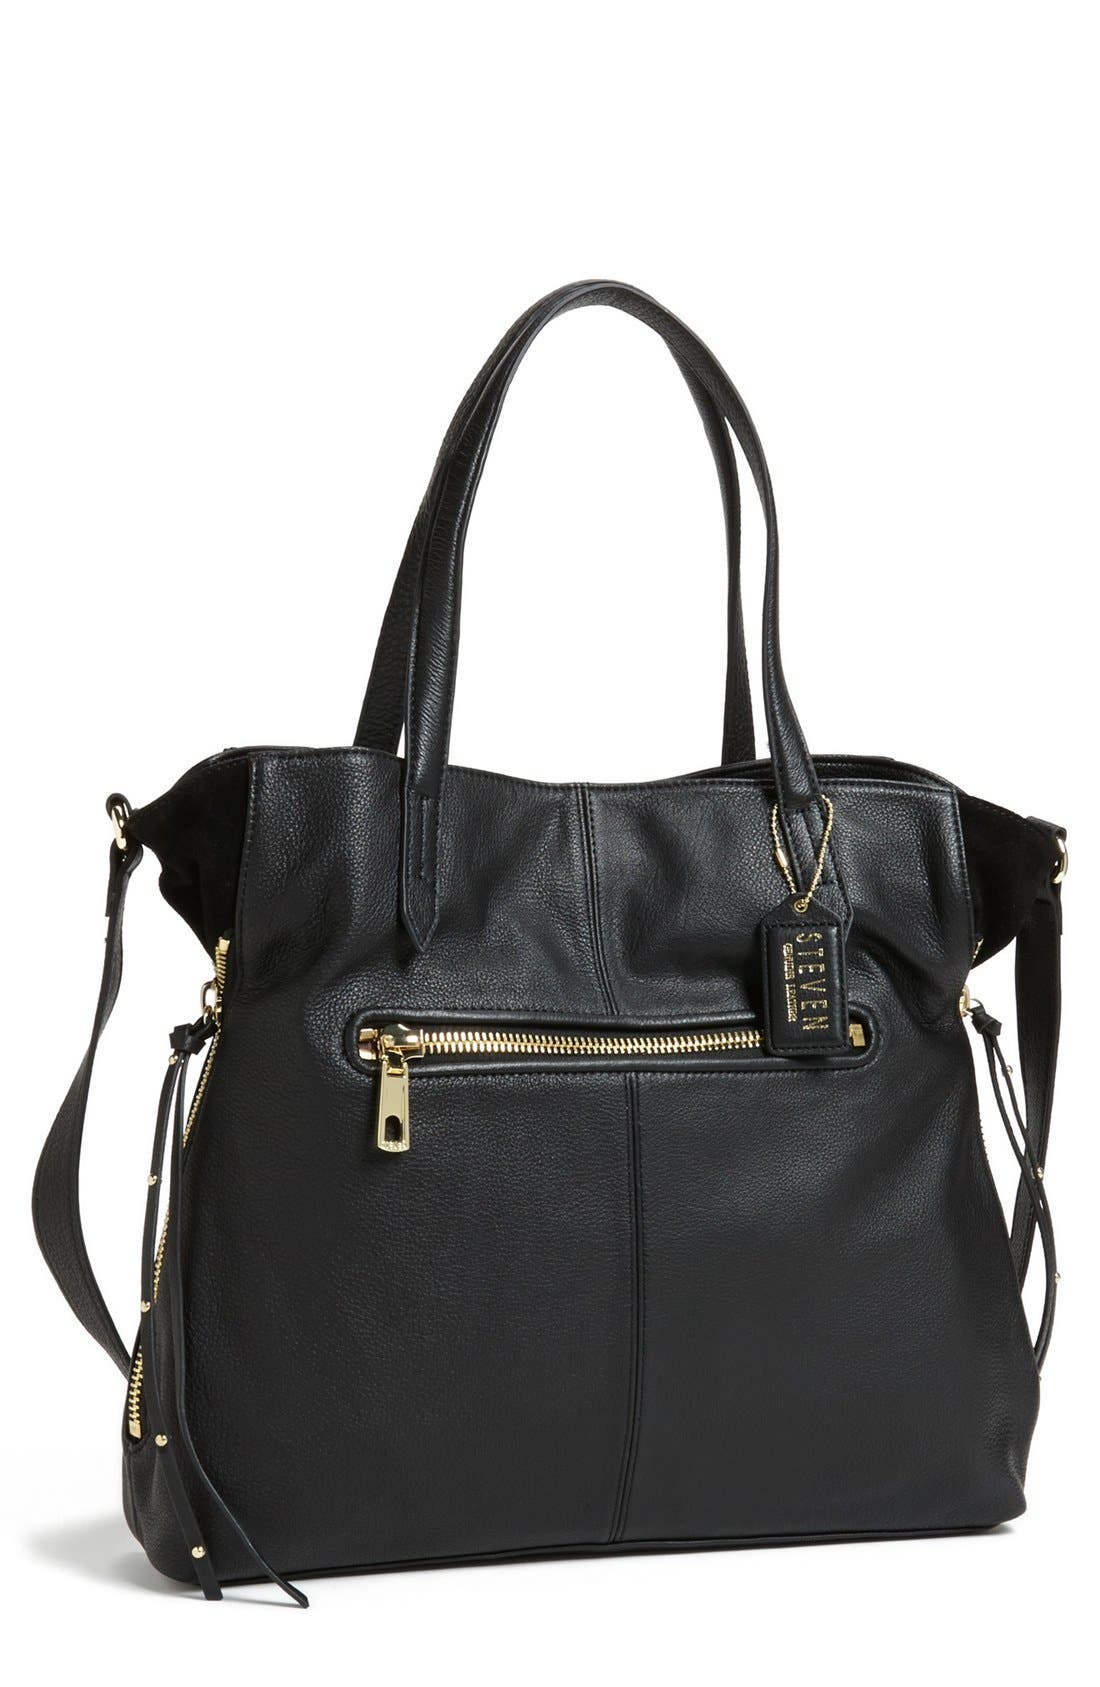 Main Image - Steven by Steve Madden 'Prague' Leather Tote